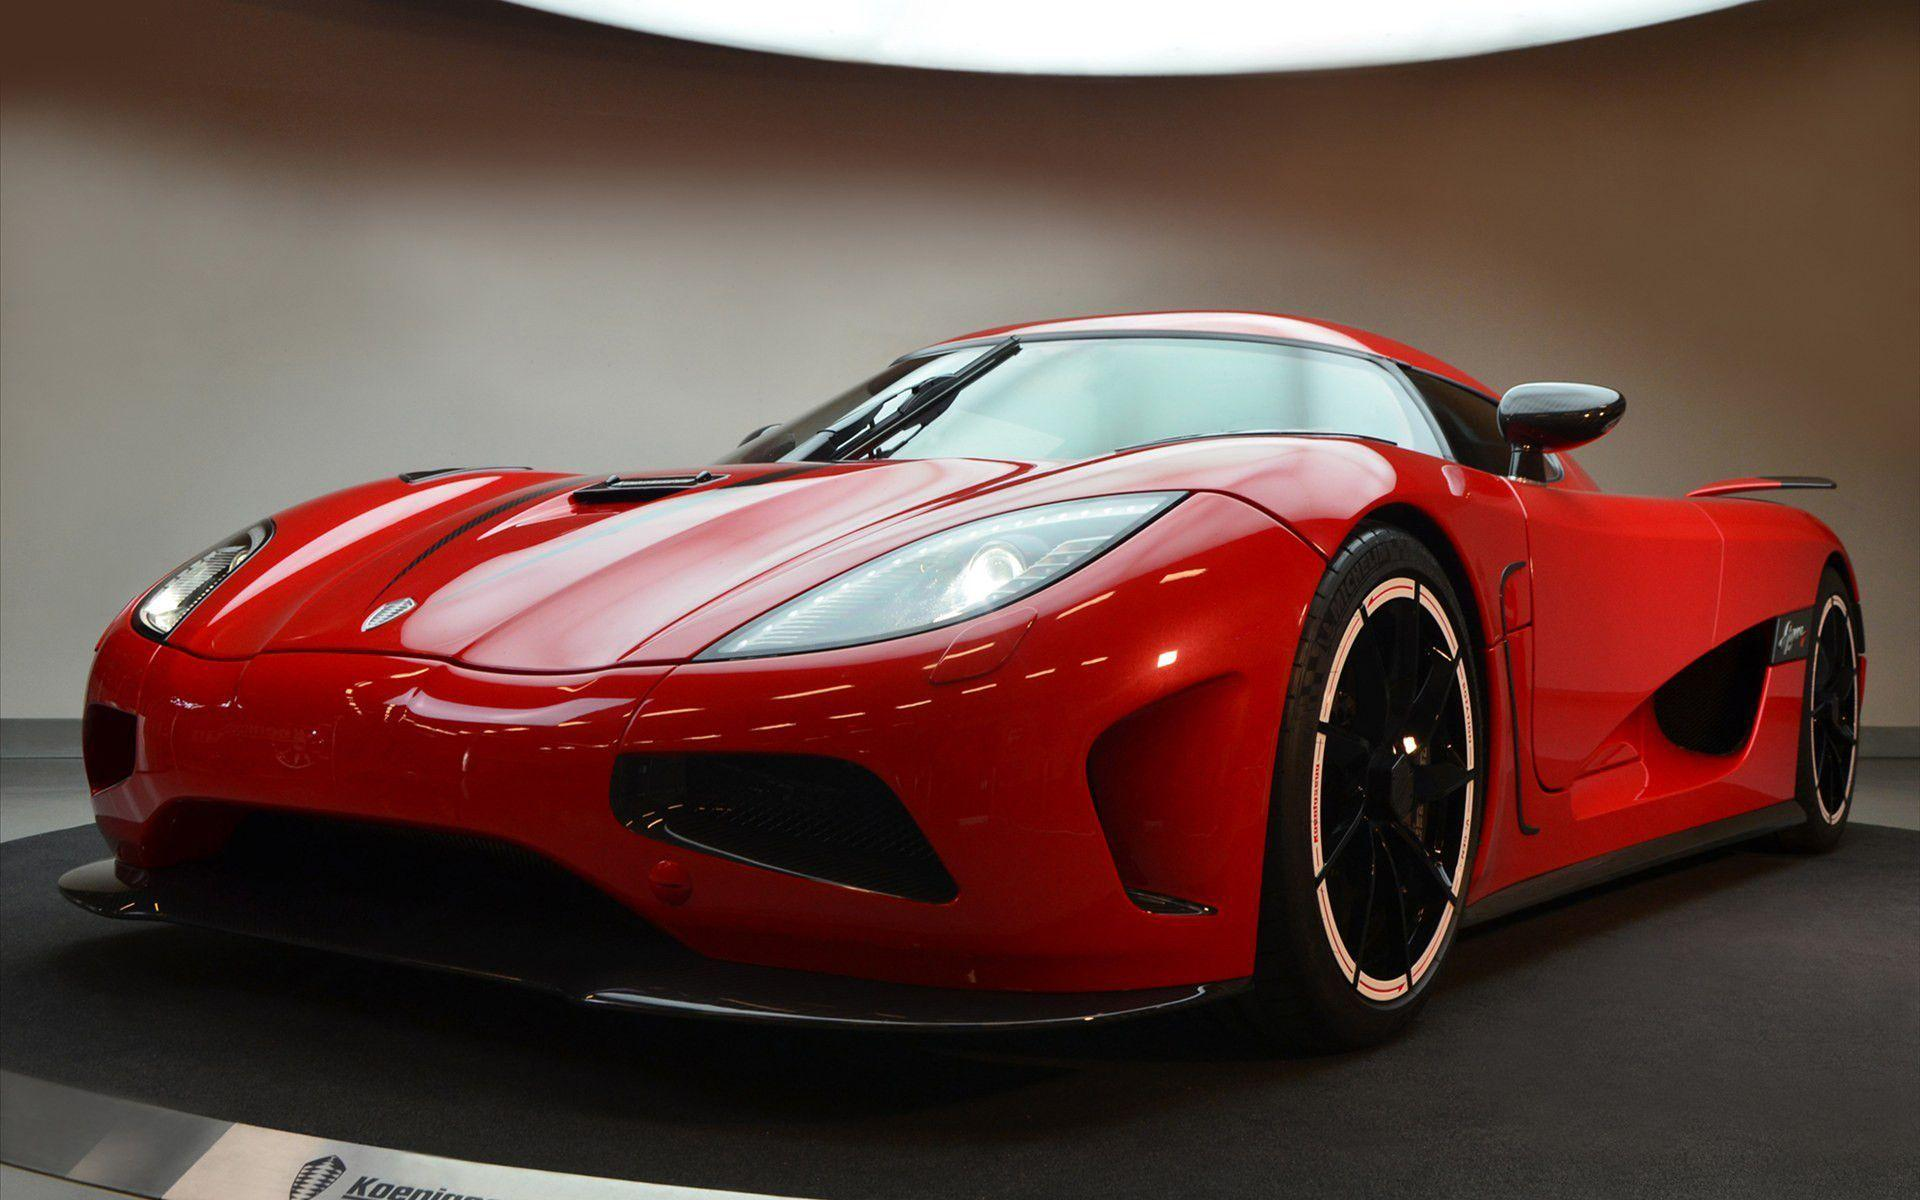 New Koenigsegg Agera R Limited Edition Free Wallpapers Desktop